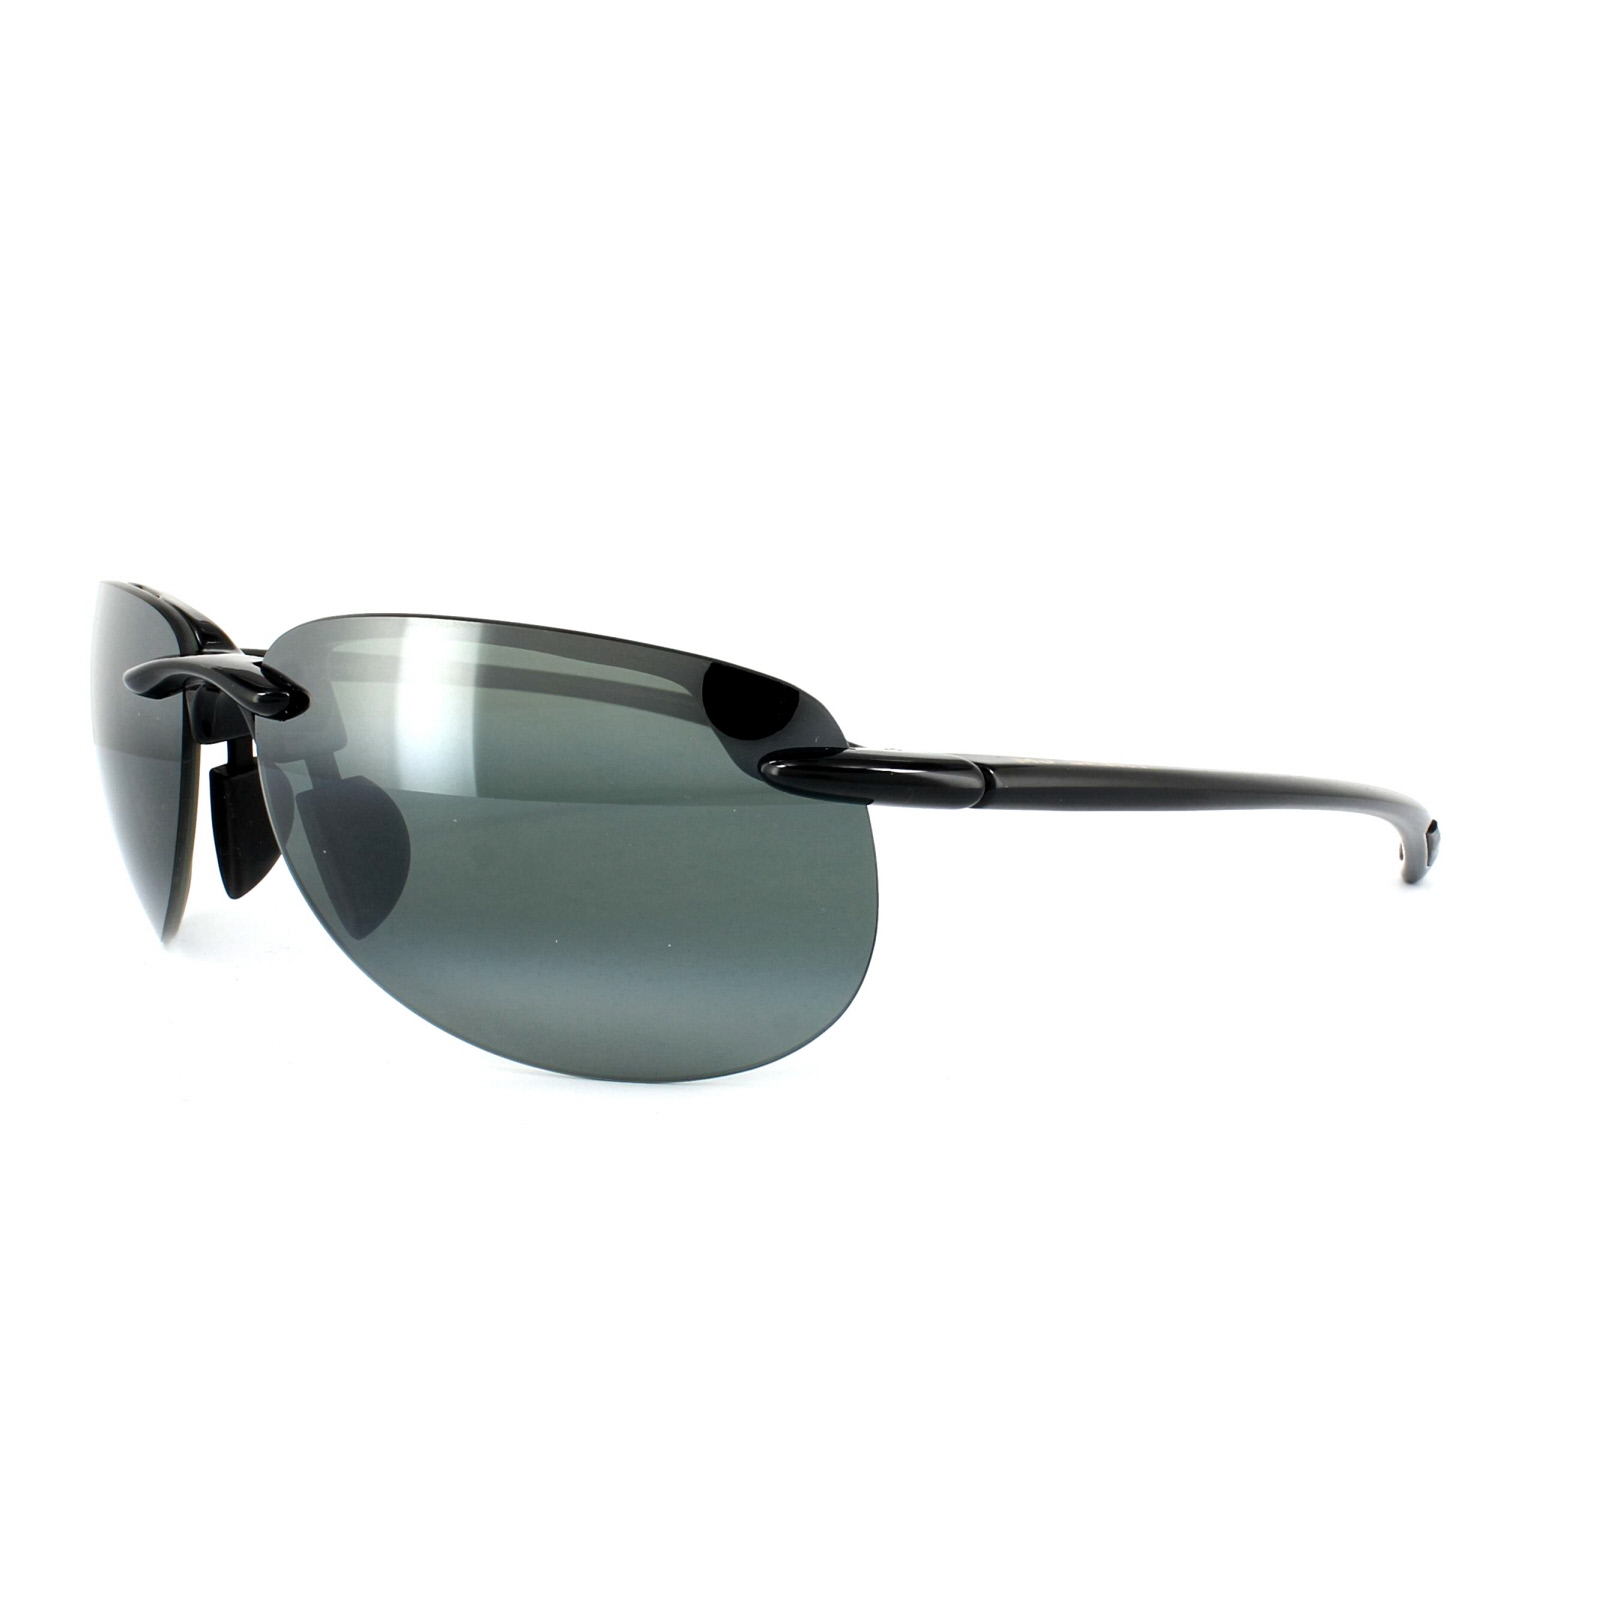 f1b68edda99f80 Sentinel Maui Jim Sunglasses Hapuna 414-02 Gloss Black Neutral Grey  Polarized